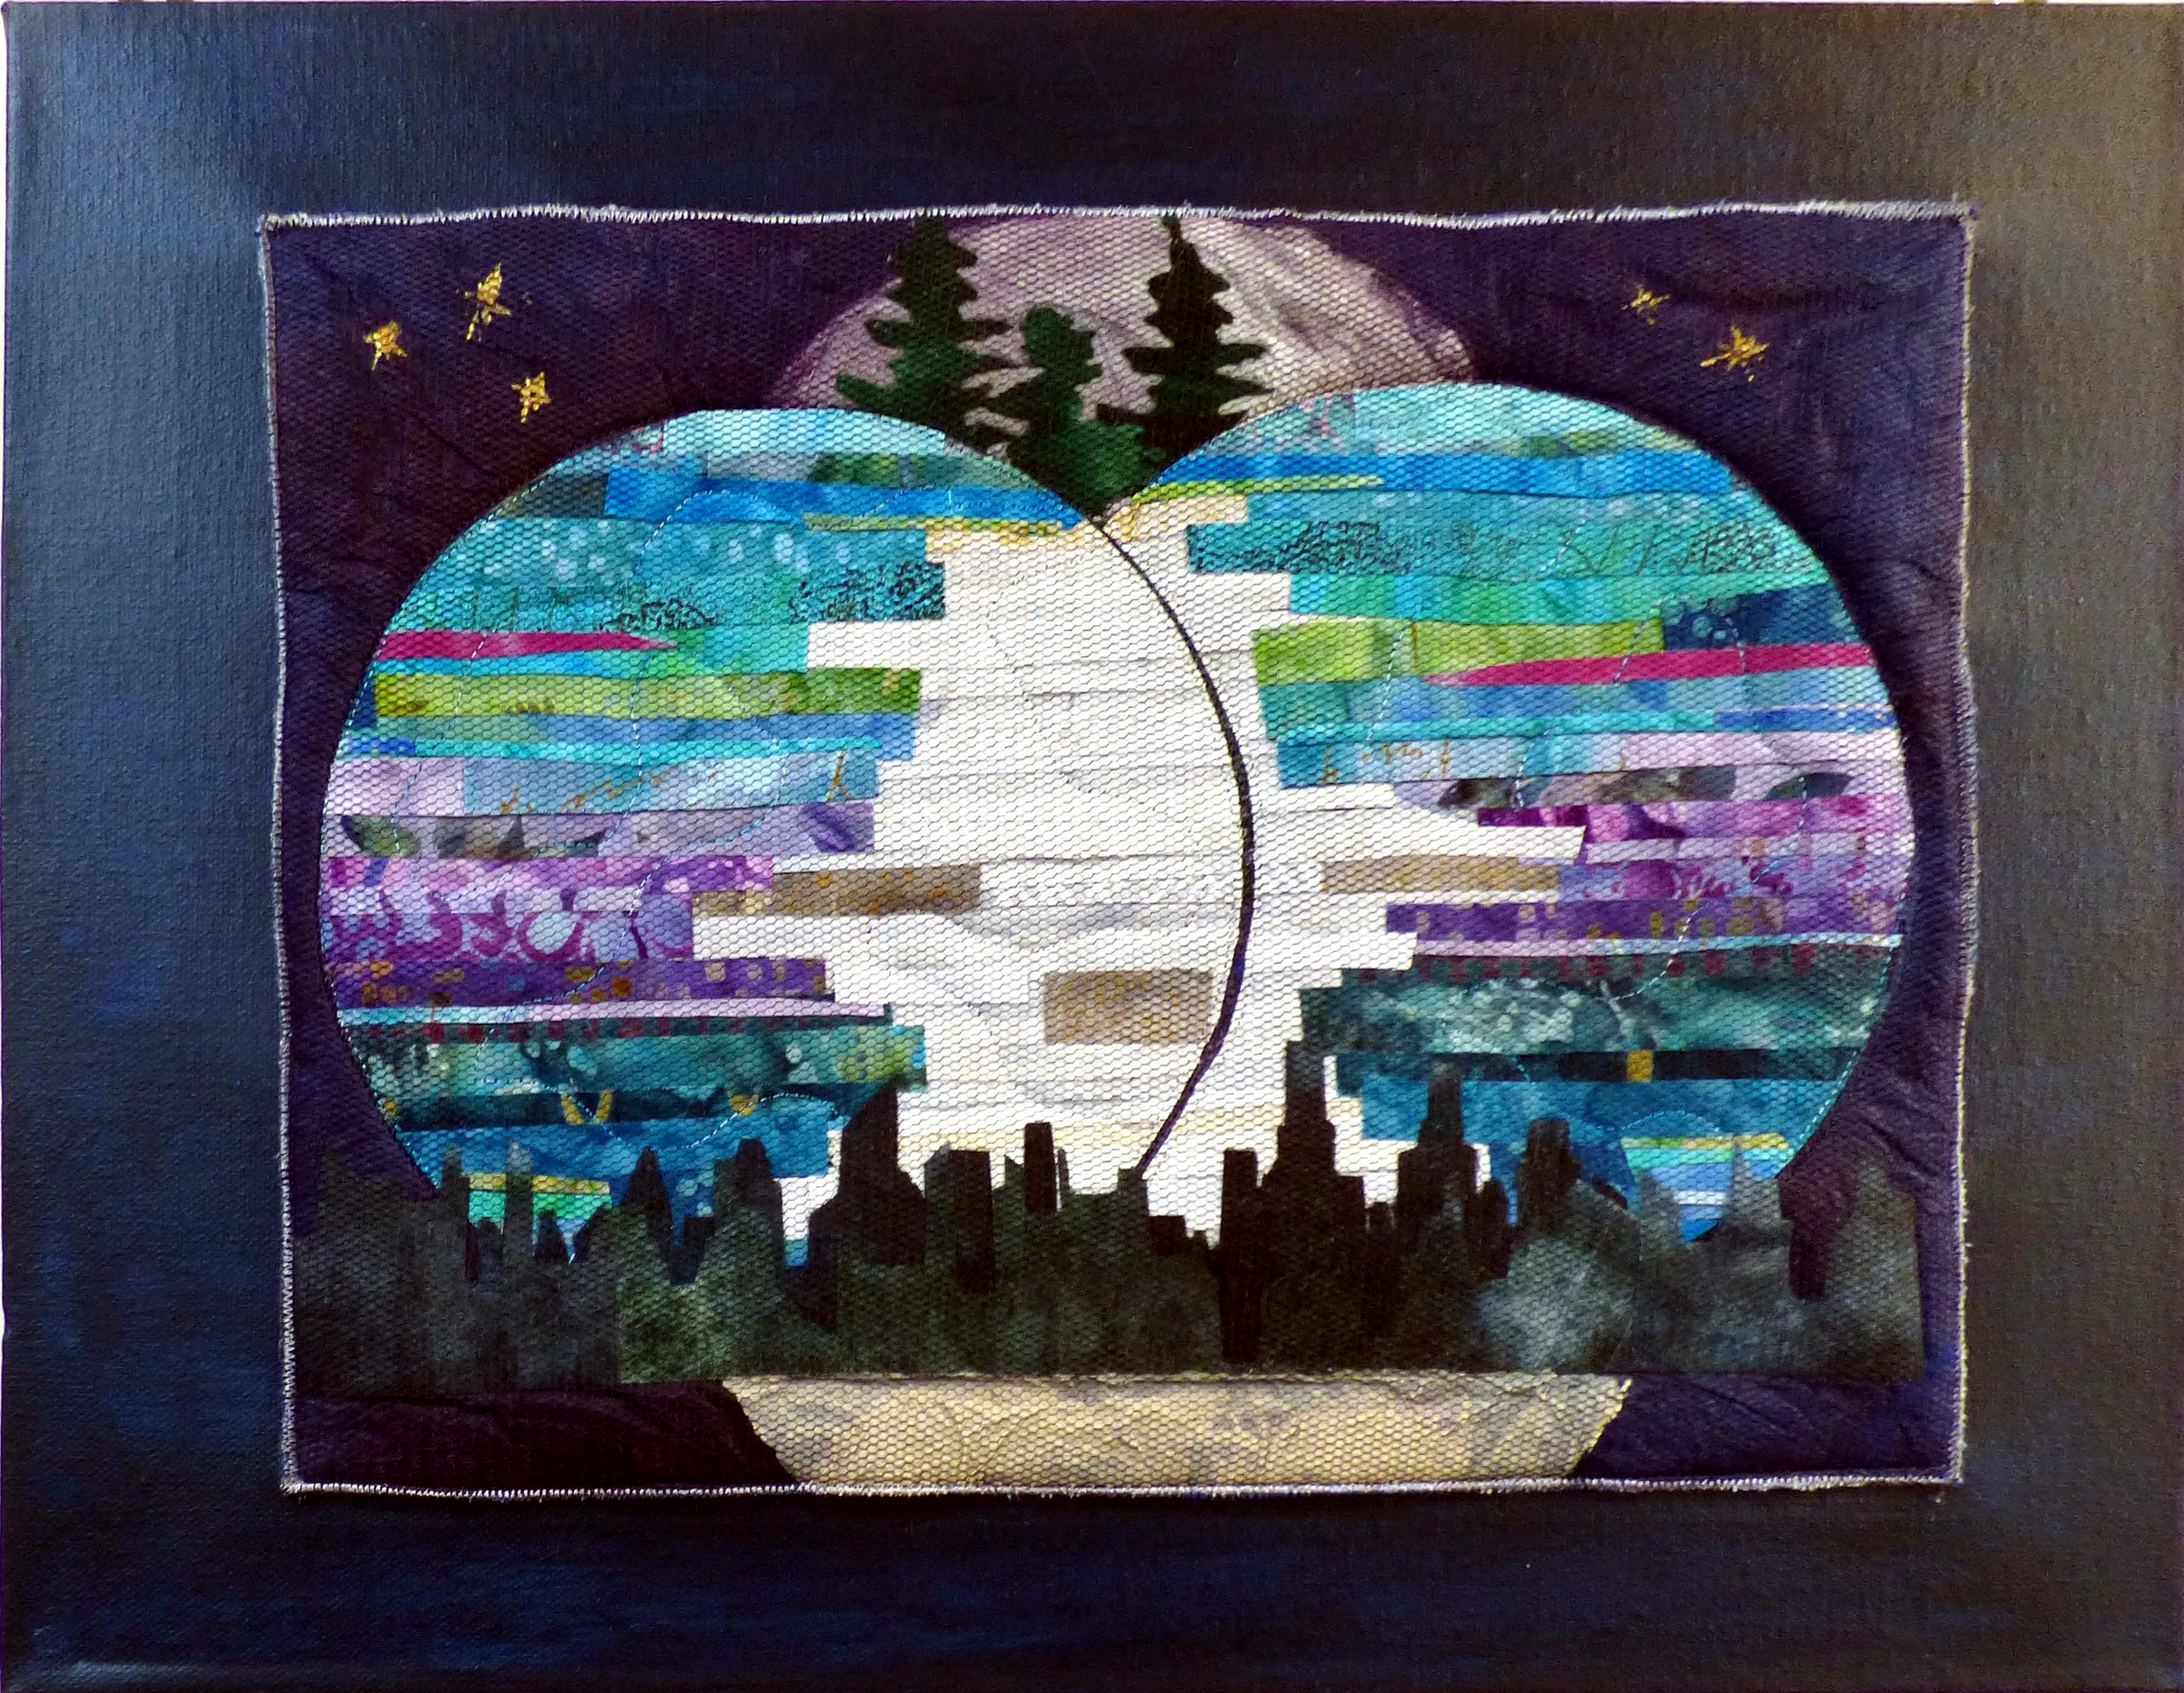 PHASES OF THE MOON: IN A BLUE MOON by Eileen Norris, Natural Progression Textile Group, Jan 2020